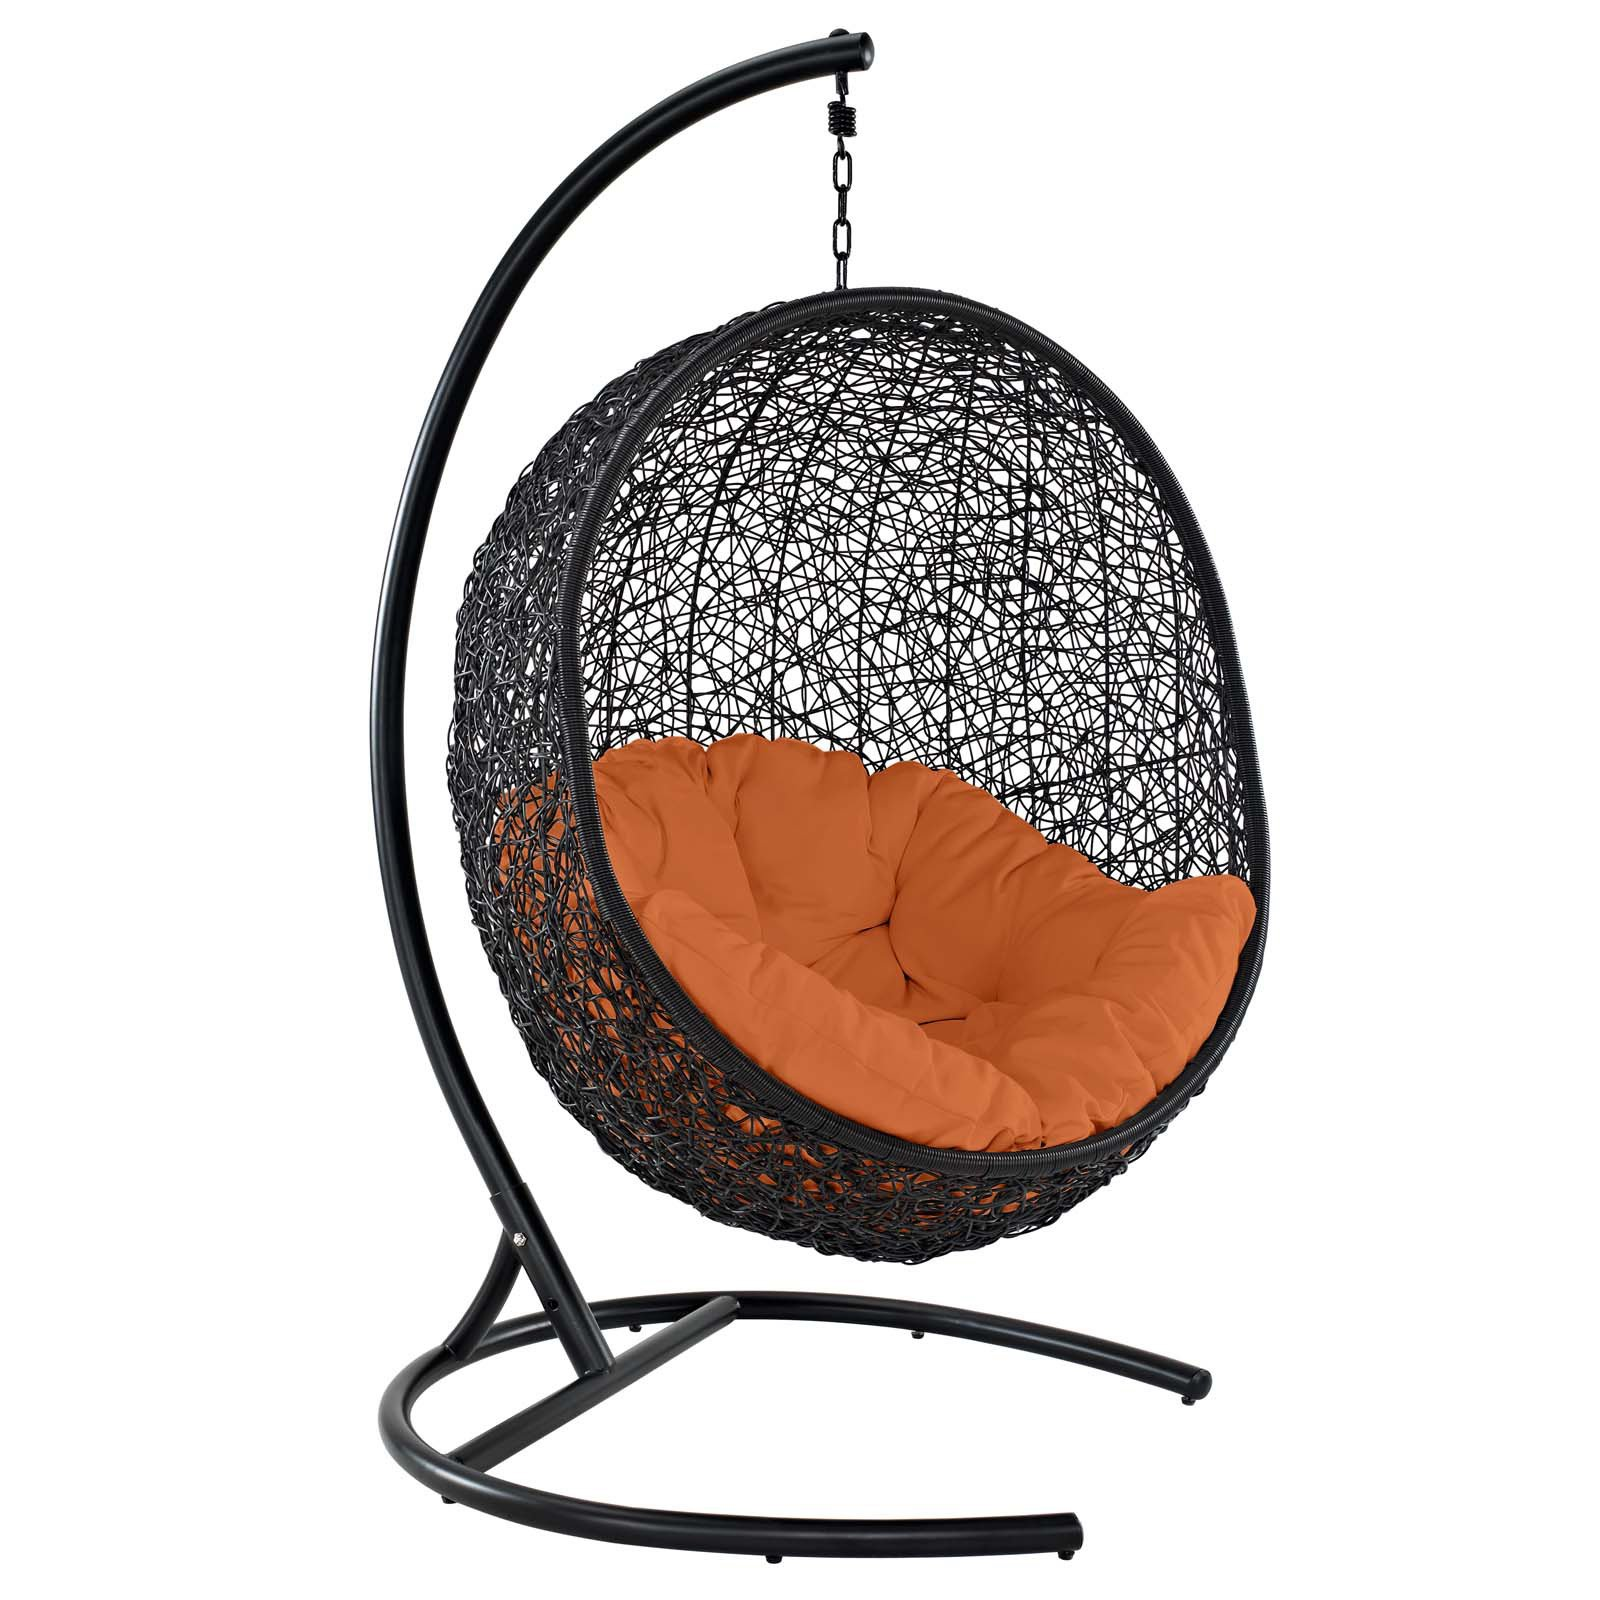 swing chair dragon mart covers and tablecloths for sale modway encase outdoor patio lounge multiple